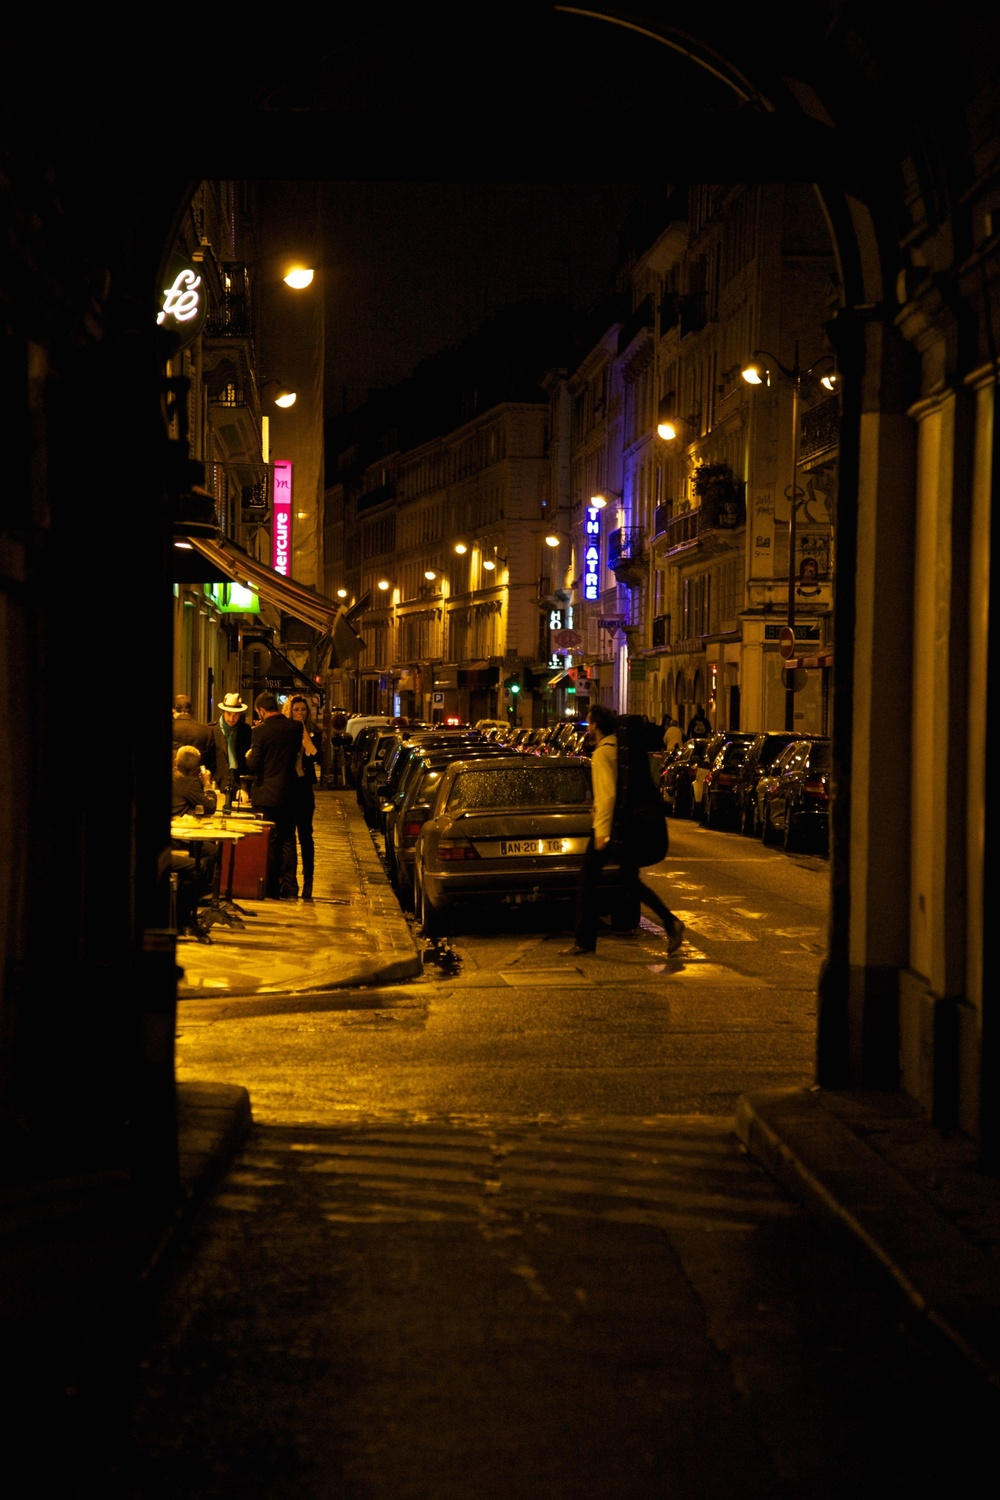 Night scene, Paris, France